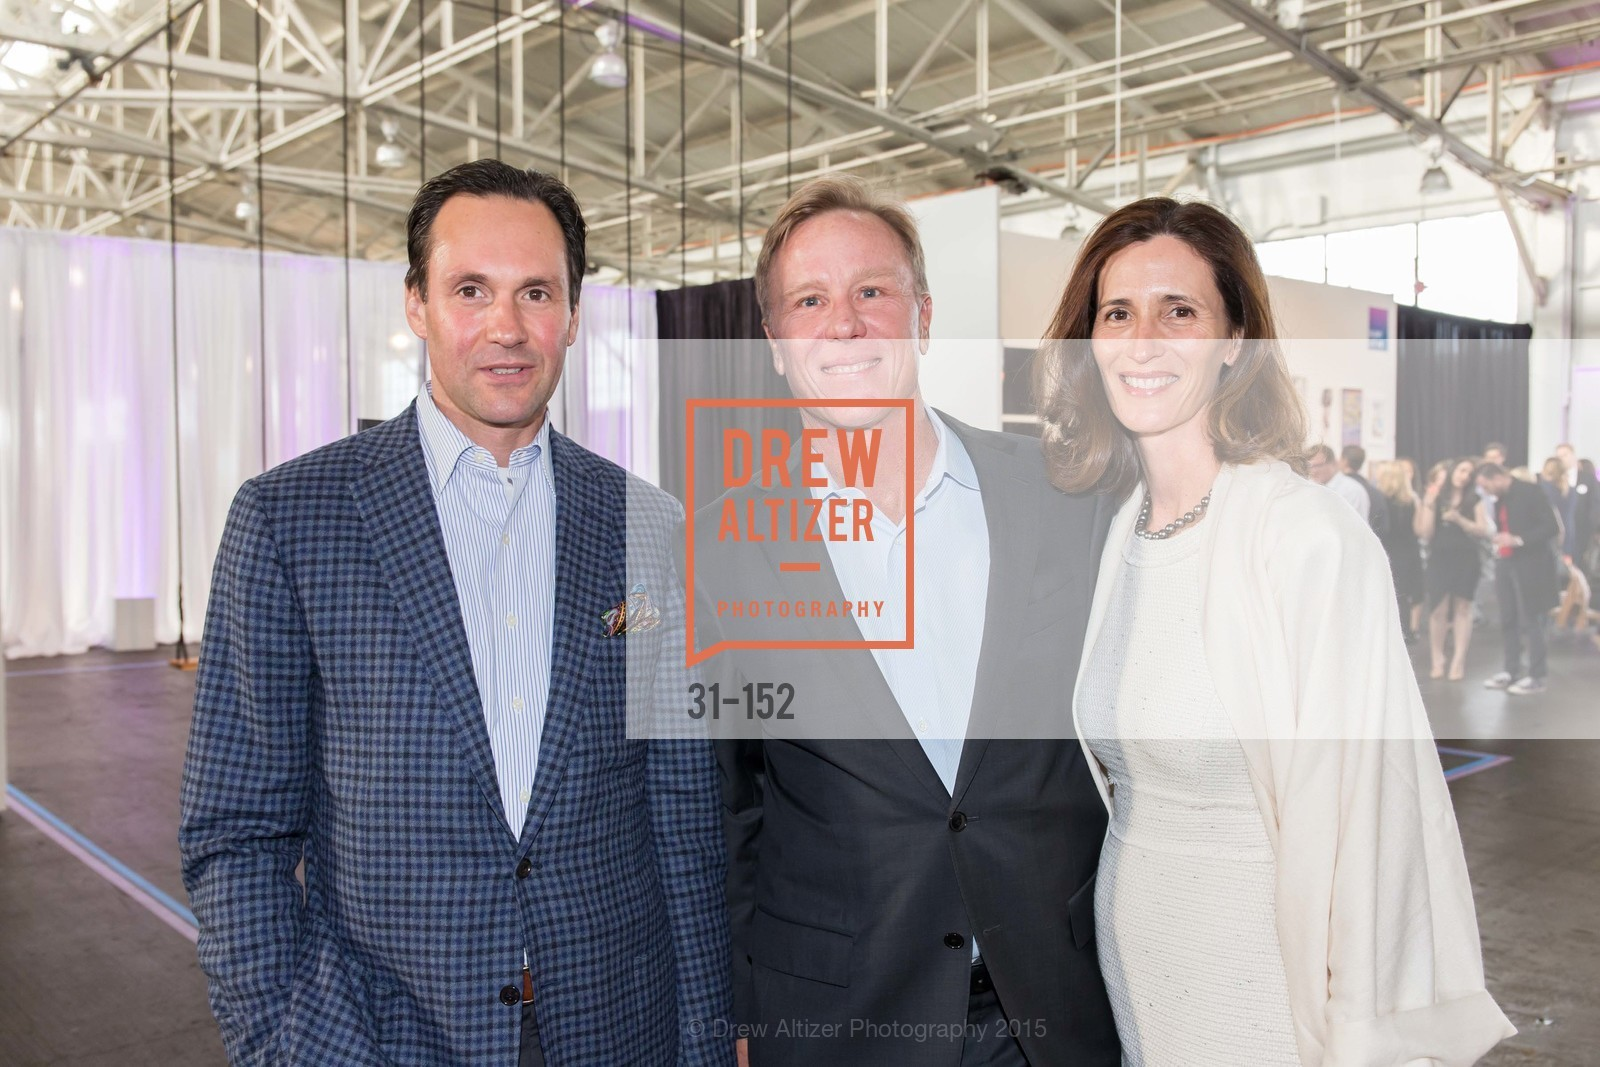 Danielle Schlunnerder, Headlands Center for the Arts Benefit Auction, Fort Mason Festival, Pavilon, June 2nd, 2015,Drew Altizer, Drew Altizer Photography, full-service event agency, private events, San Francisco photographer, photographer California